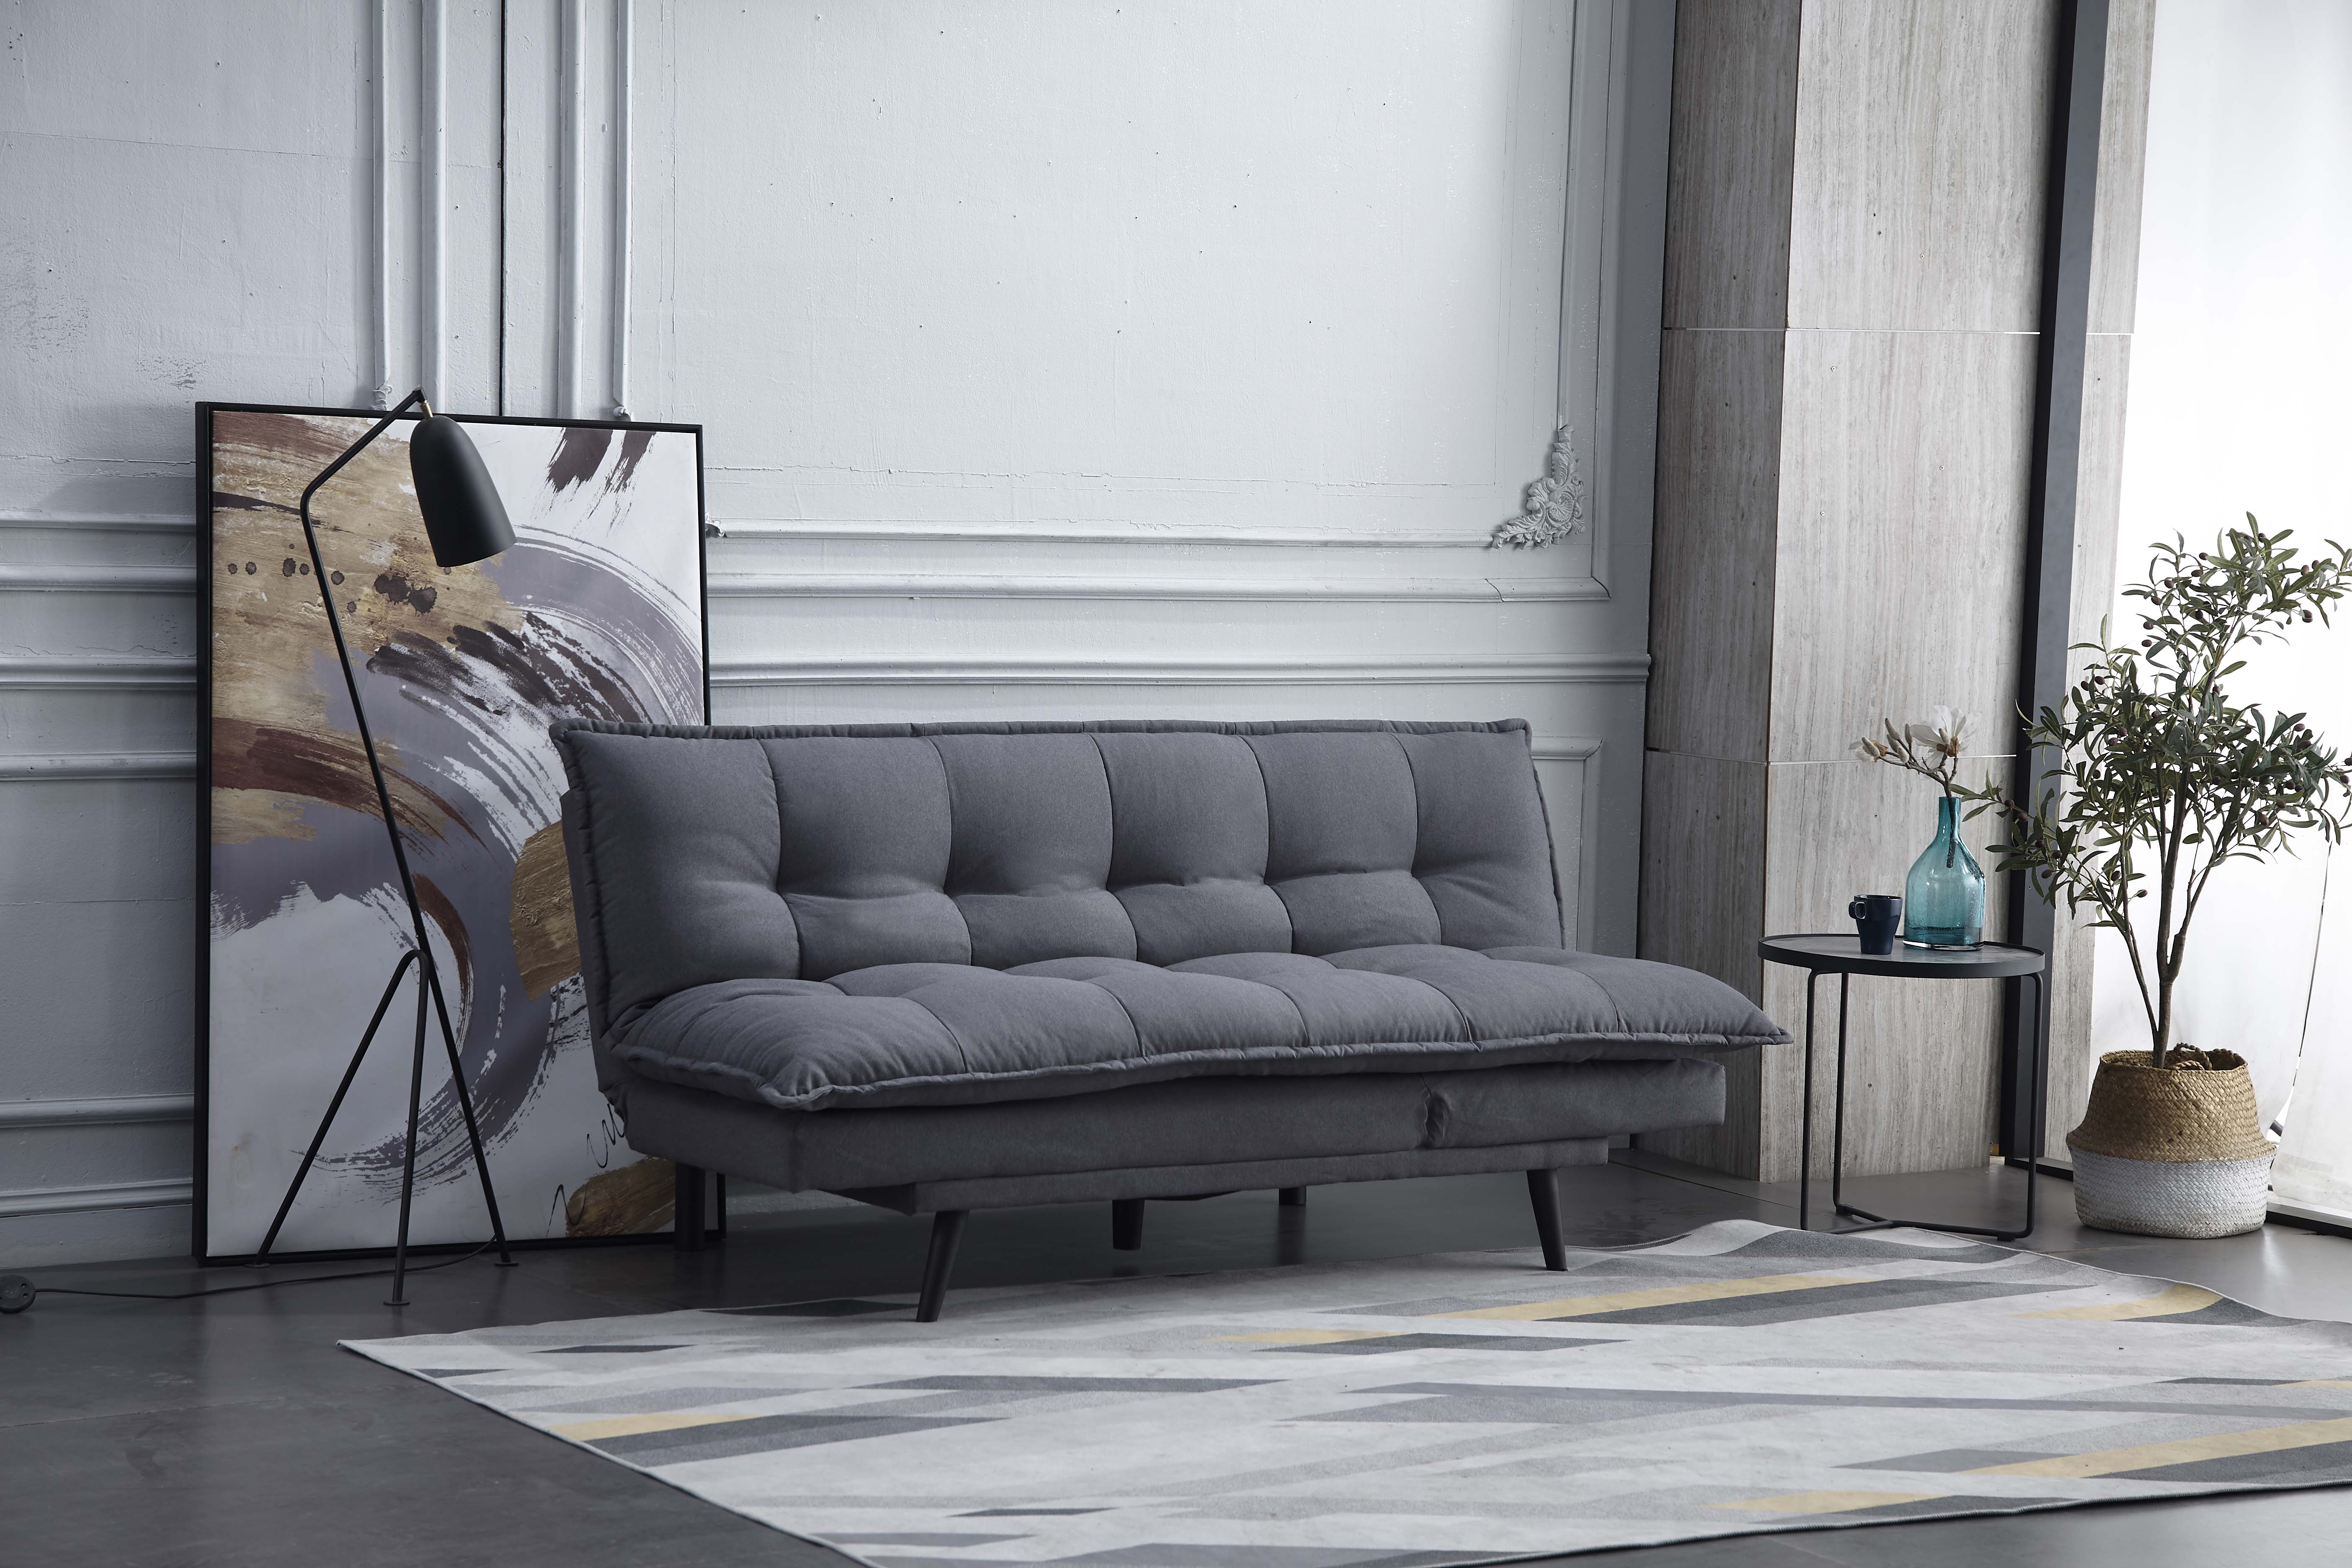 8369 dark gray pillow top multi functional futon sofa bed 8369 milton greens stars lowest price possible with best possible value